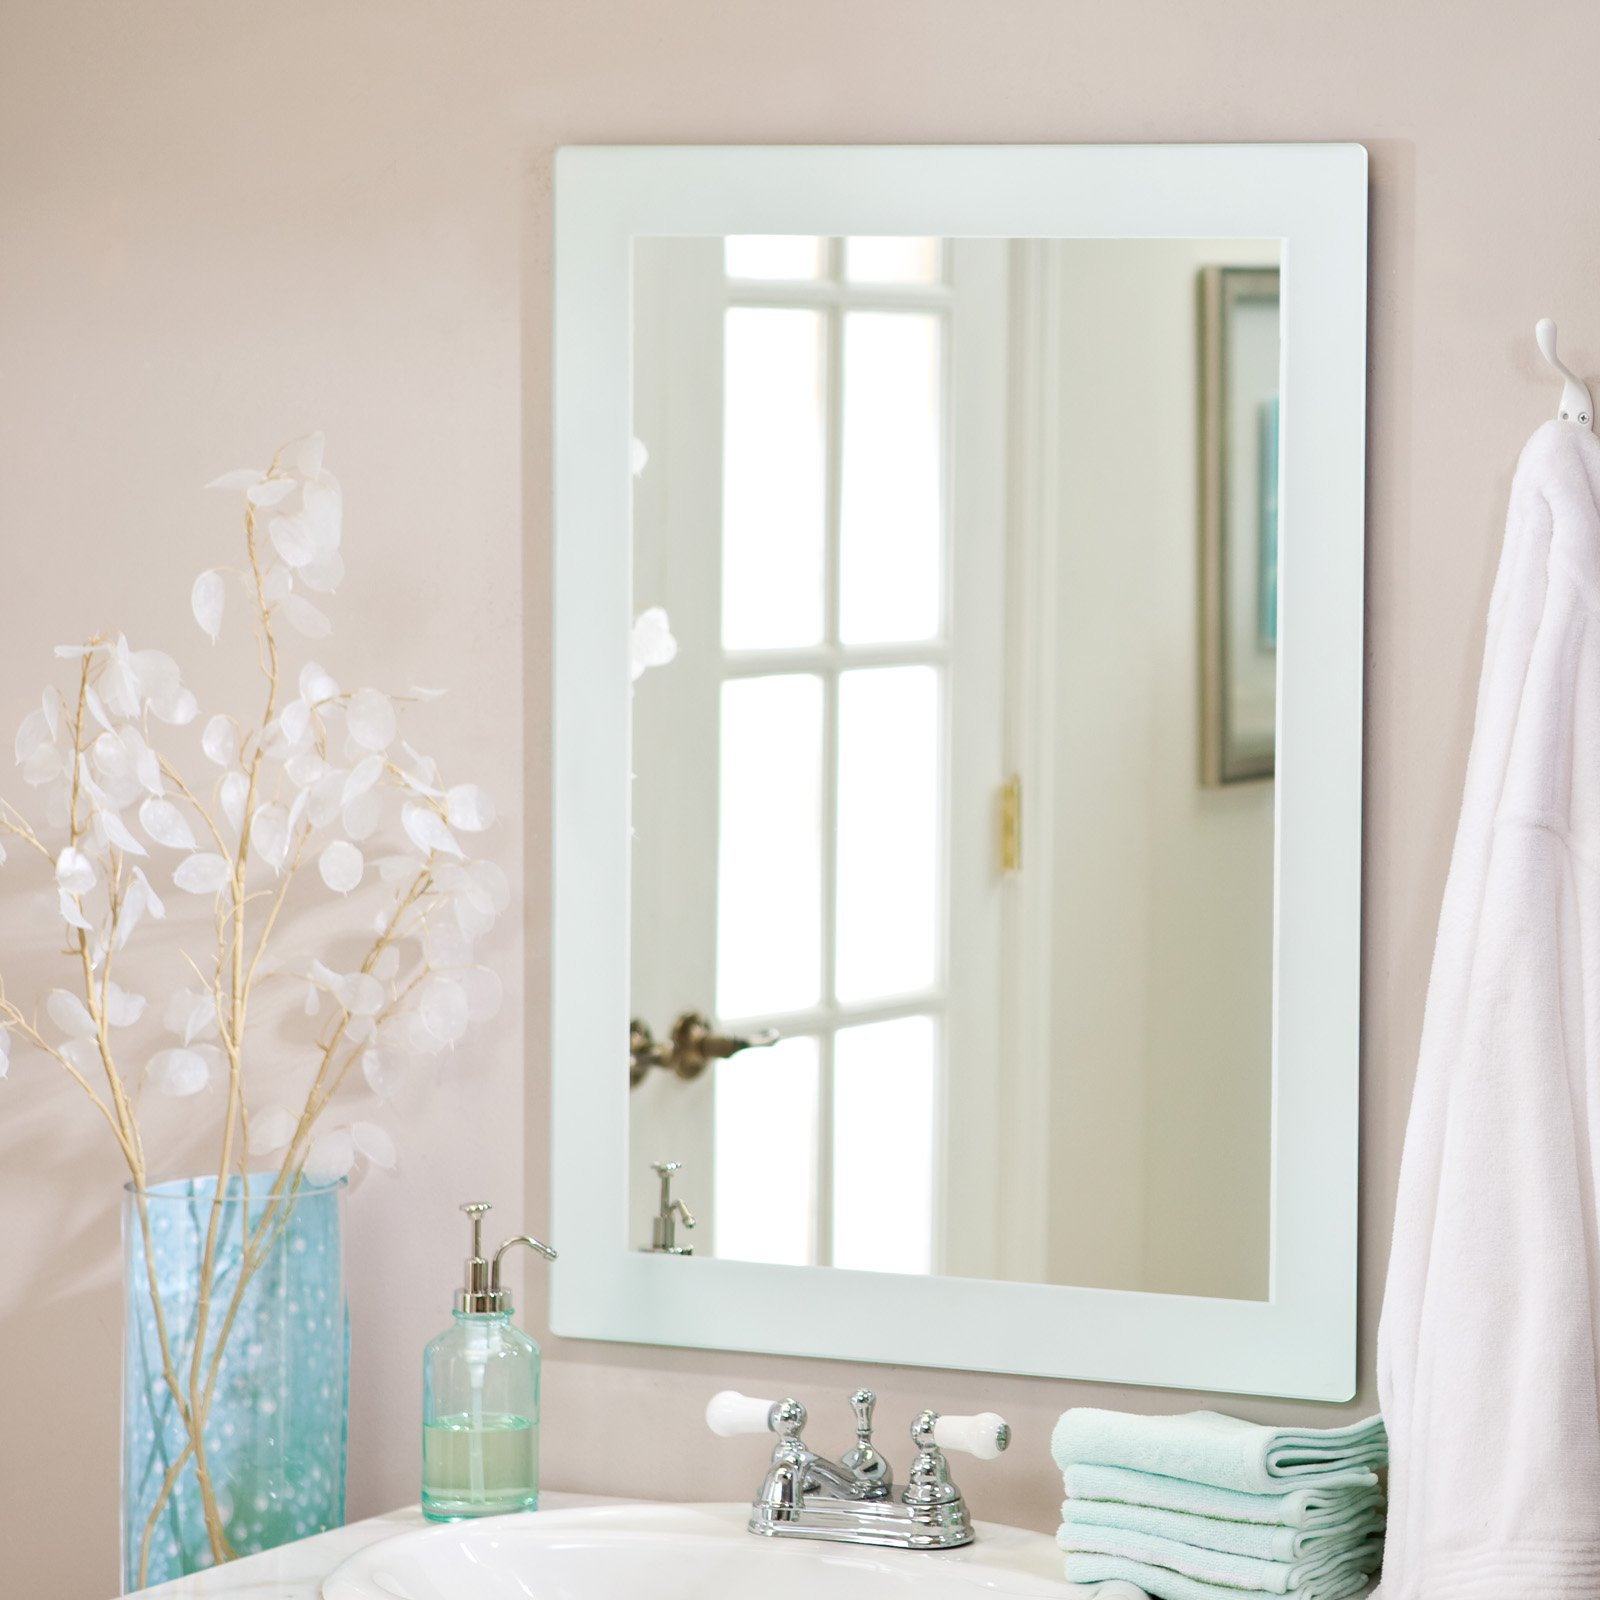 Décor Wonderland Sands Large Wall Mirror - 23.6W x 31.5H in.